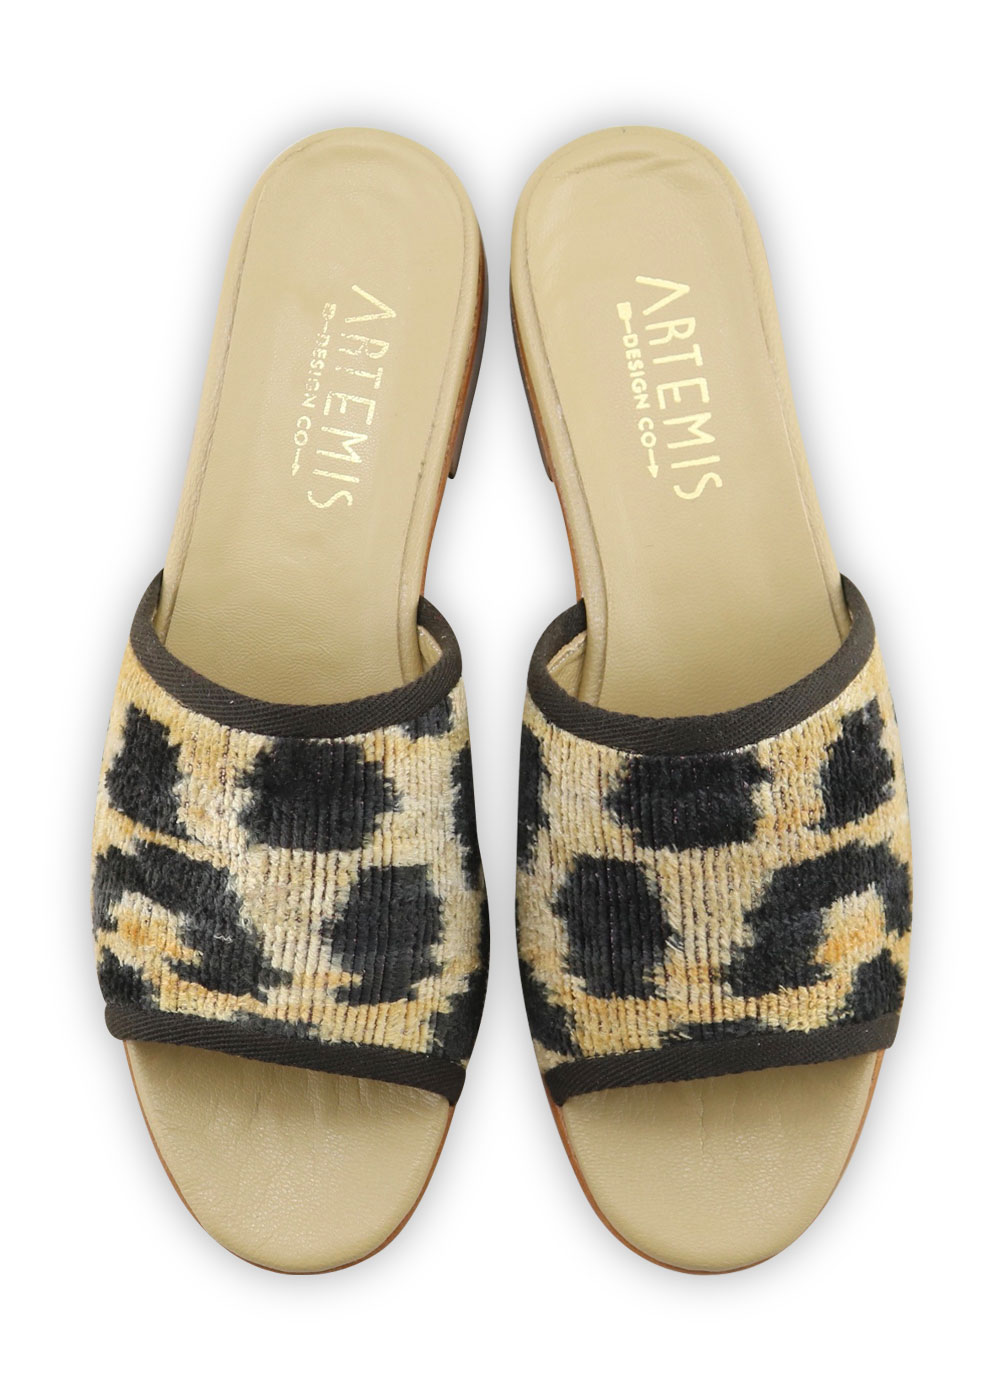 Artemis-Design-Co-Silk-Sandals-leopard.jpg